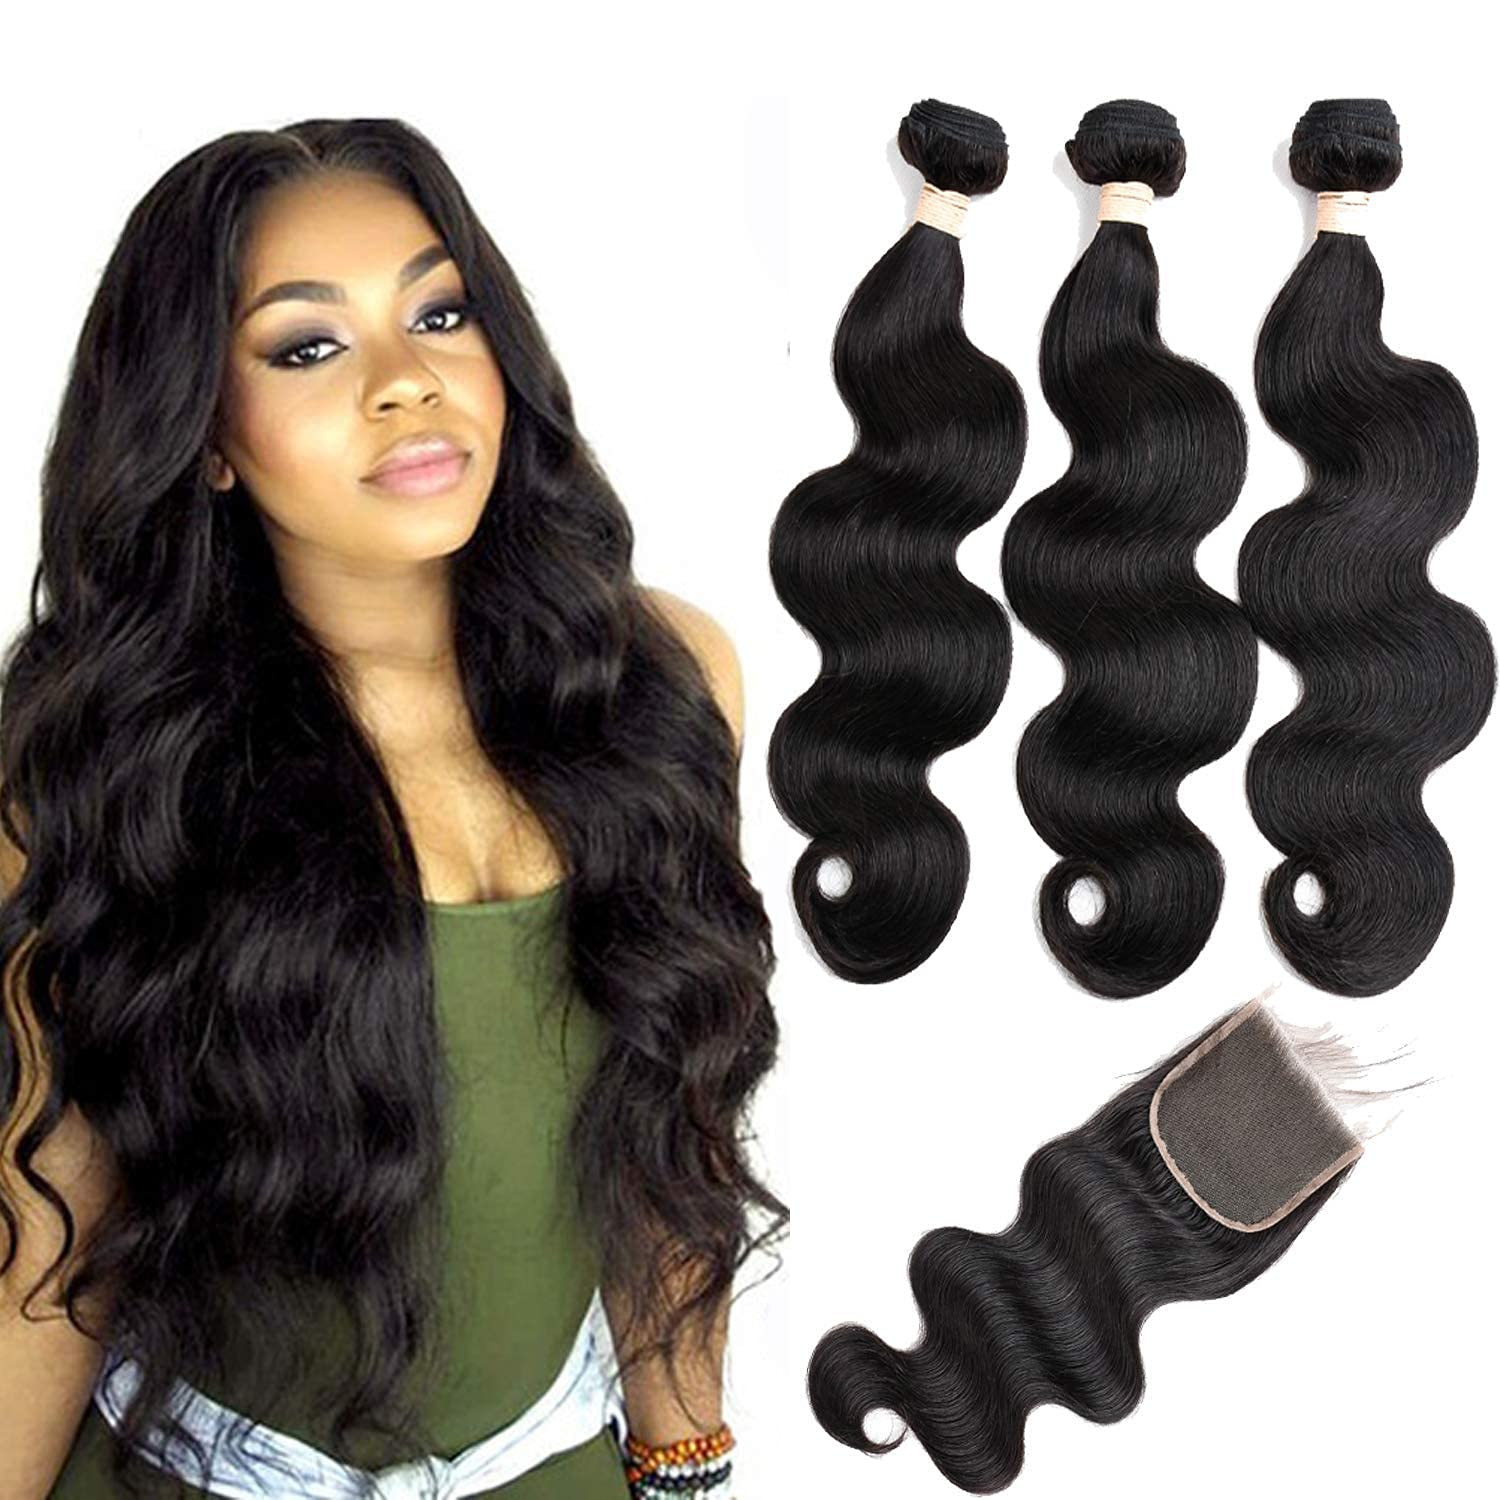 FLE Hair Brazilian New product type Body Wave Bundles Excellence 20 Closure With 22 C 24+18